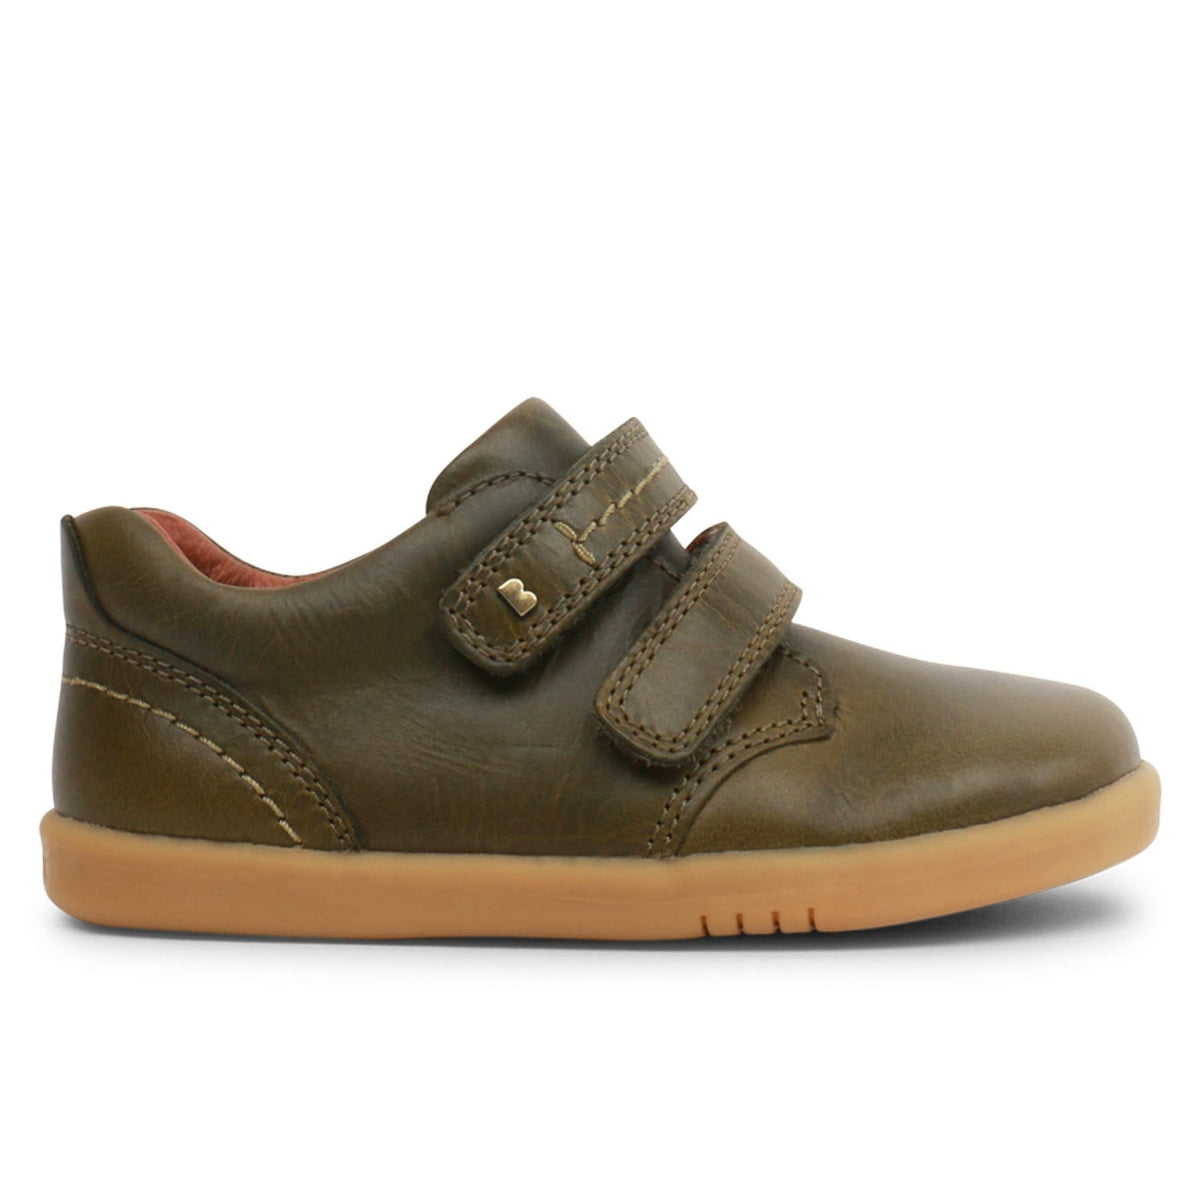 IW Port Shoe Olive